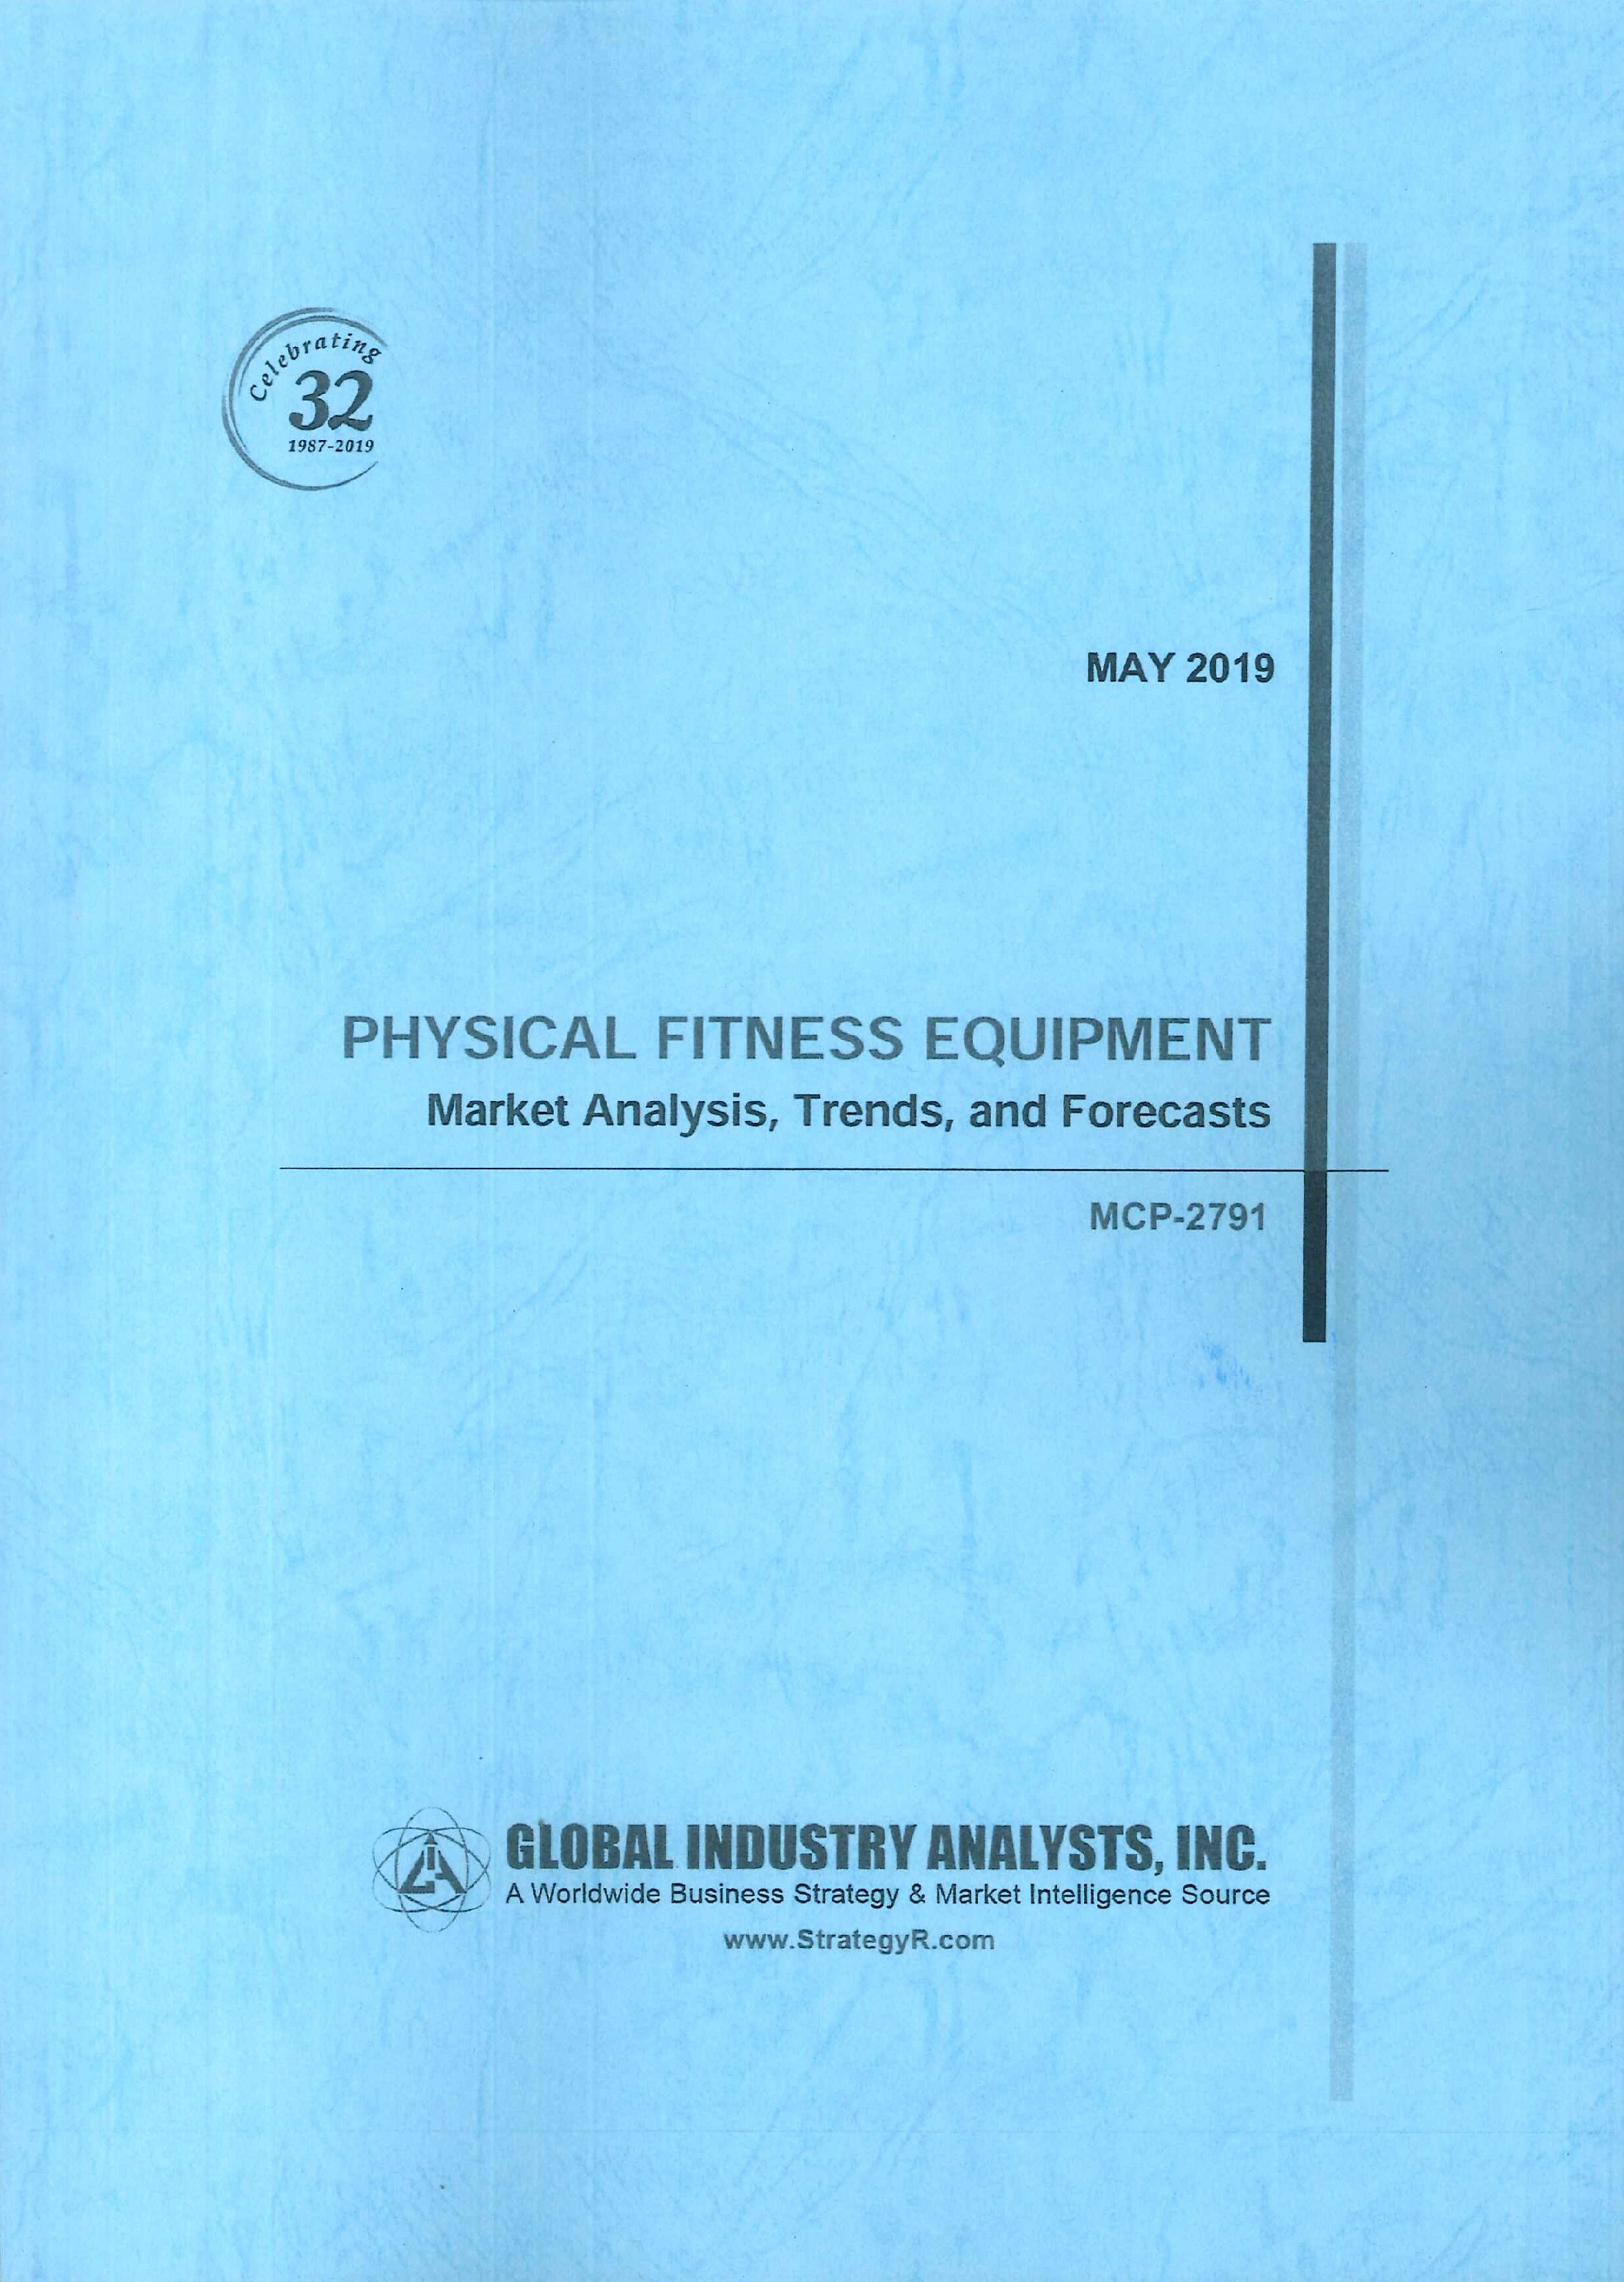 Physical fitness equipment [e-book]:market analysis, trends, and forecasts.